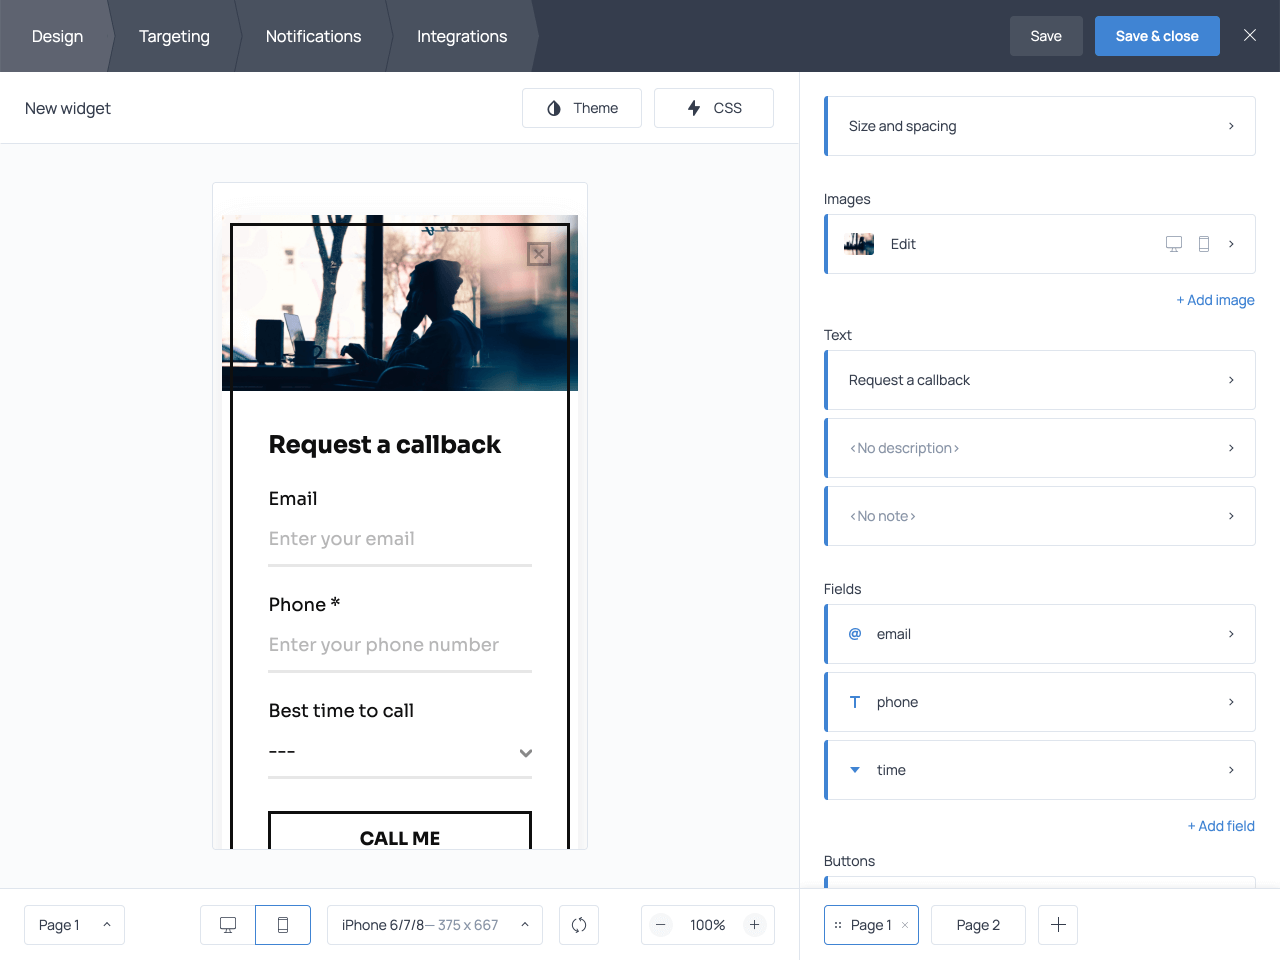 Callback request form on mobile screens